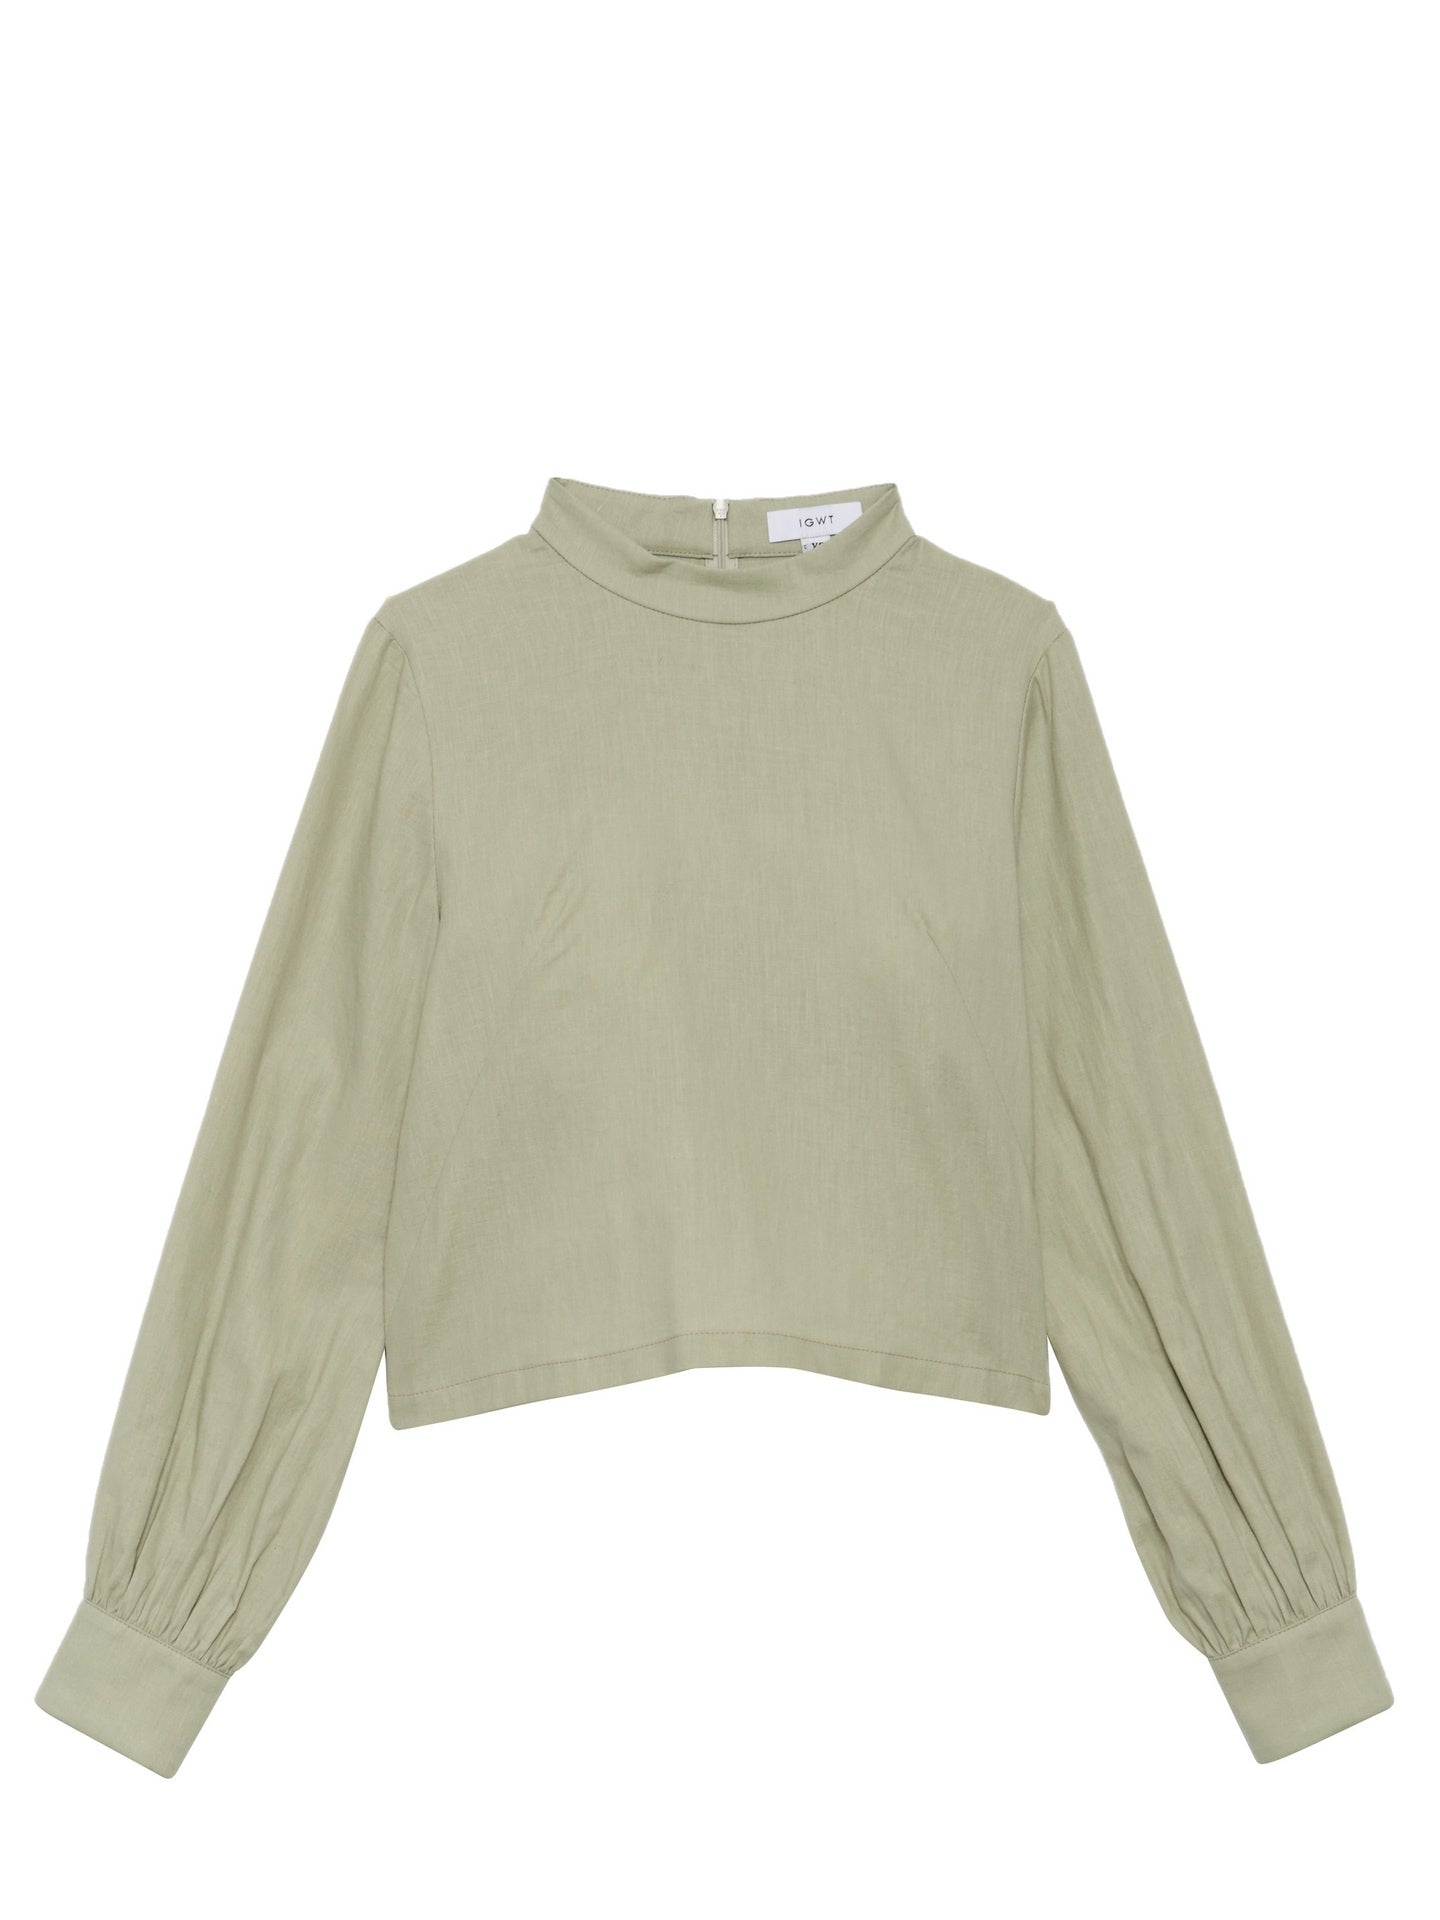 Valerie Top / Sage Washed Cotton